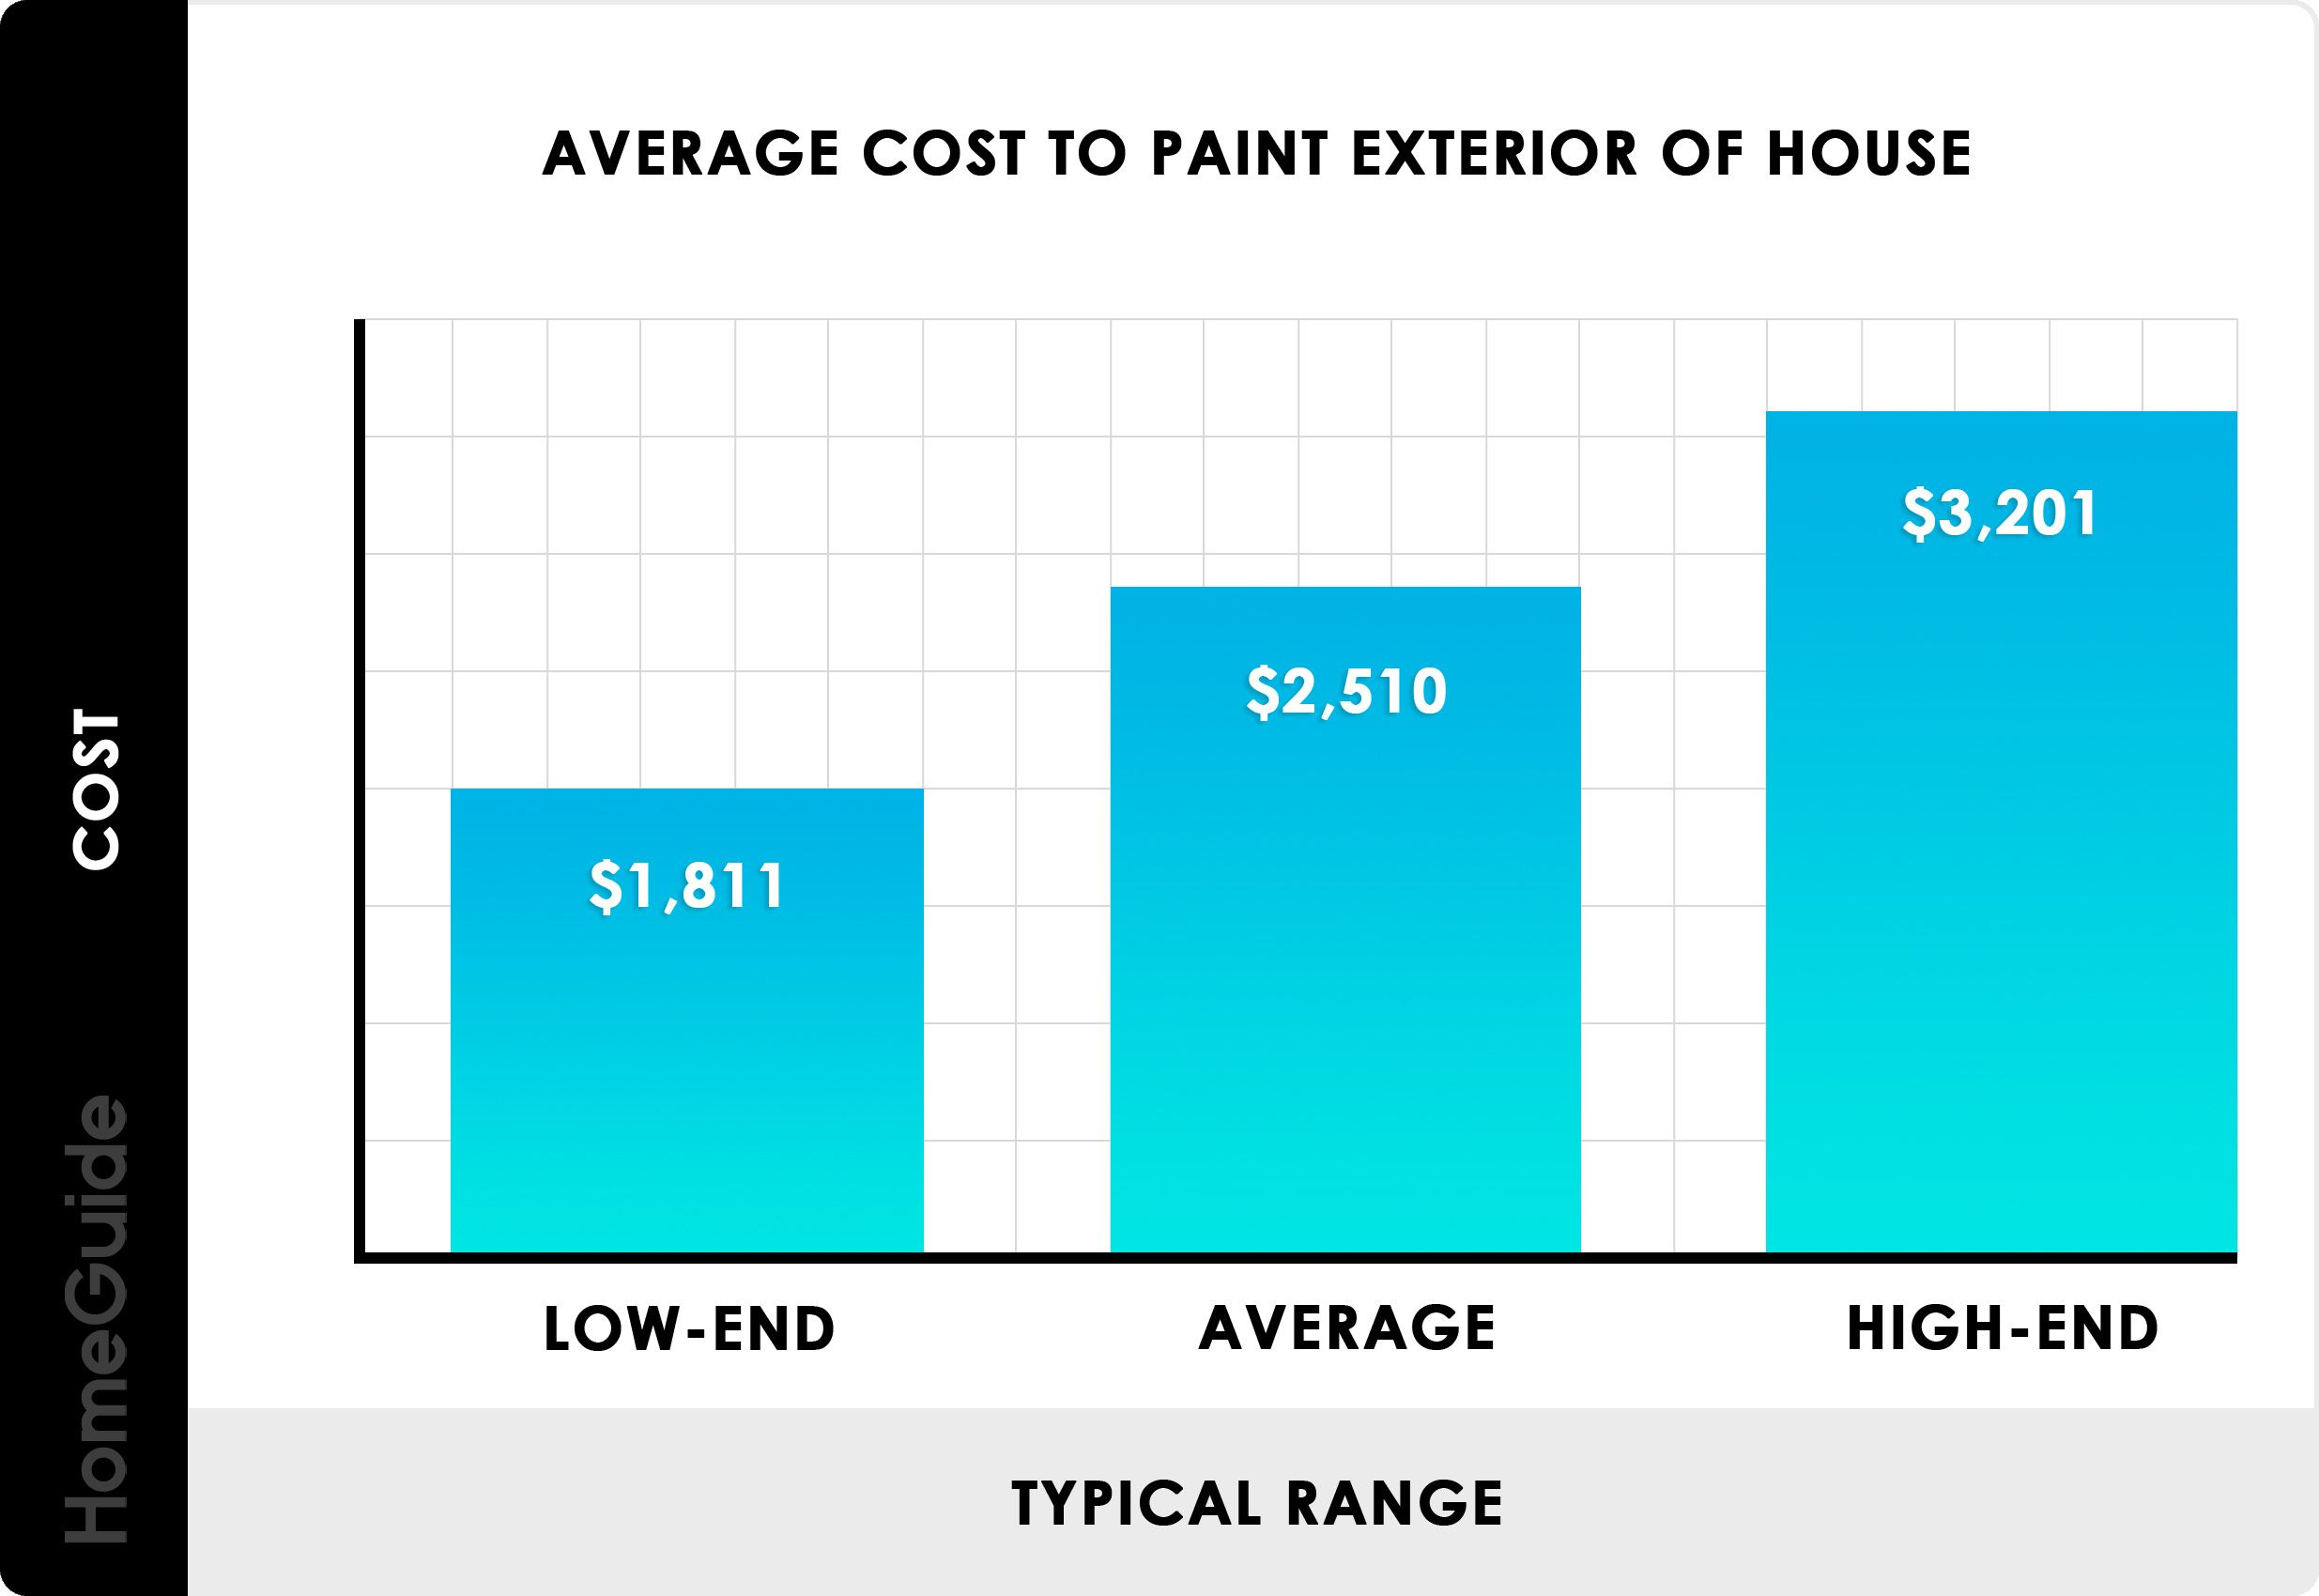 Homeadvisor S Cost To Paint A Room Calculator And Guide Gives Local And Average Interior Paint Job Costs Per Square Foot F Room Paint Interior Paint Paint Job